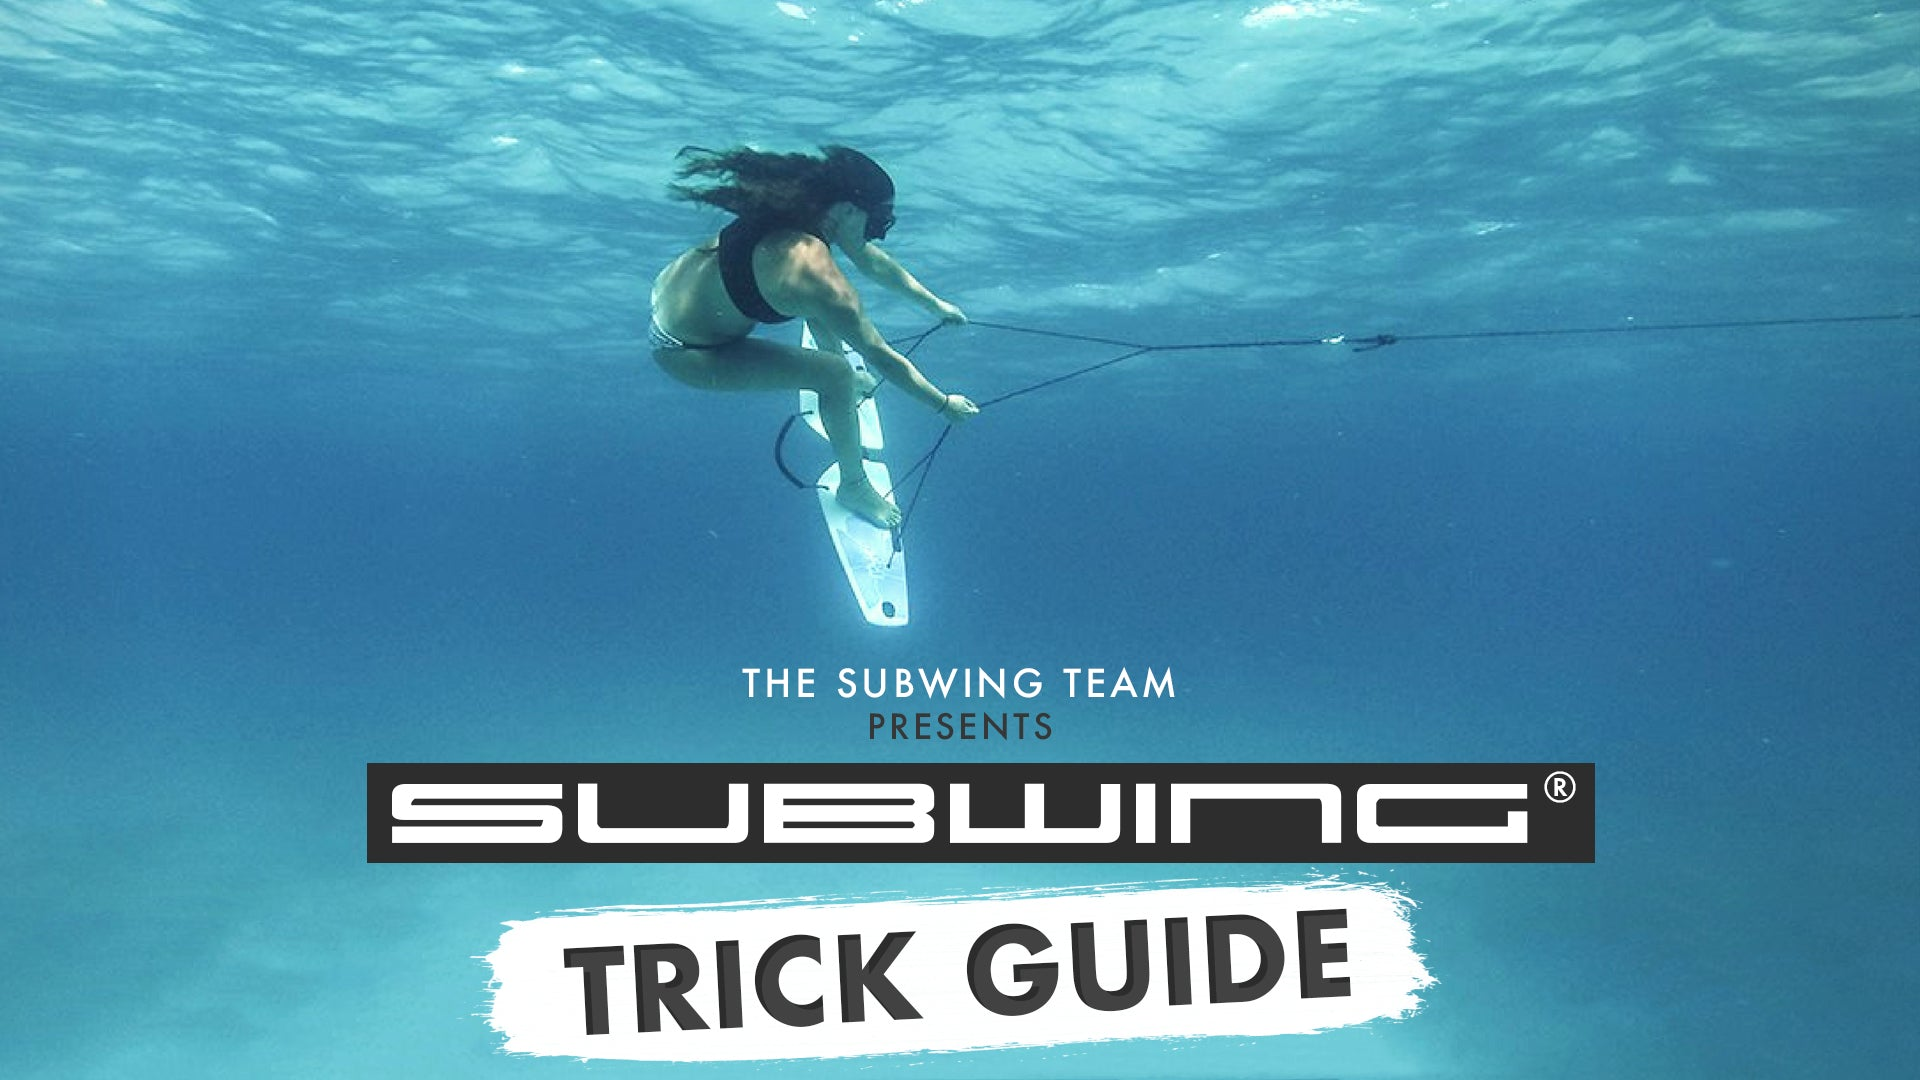 Subwing trick guide